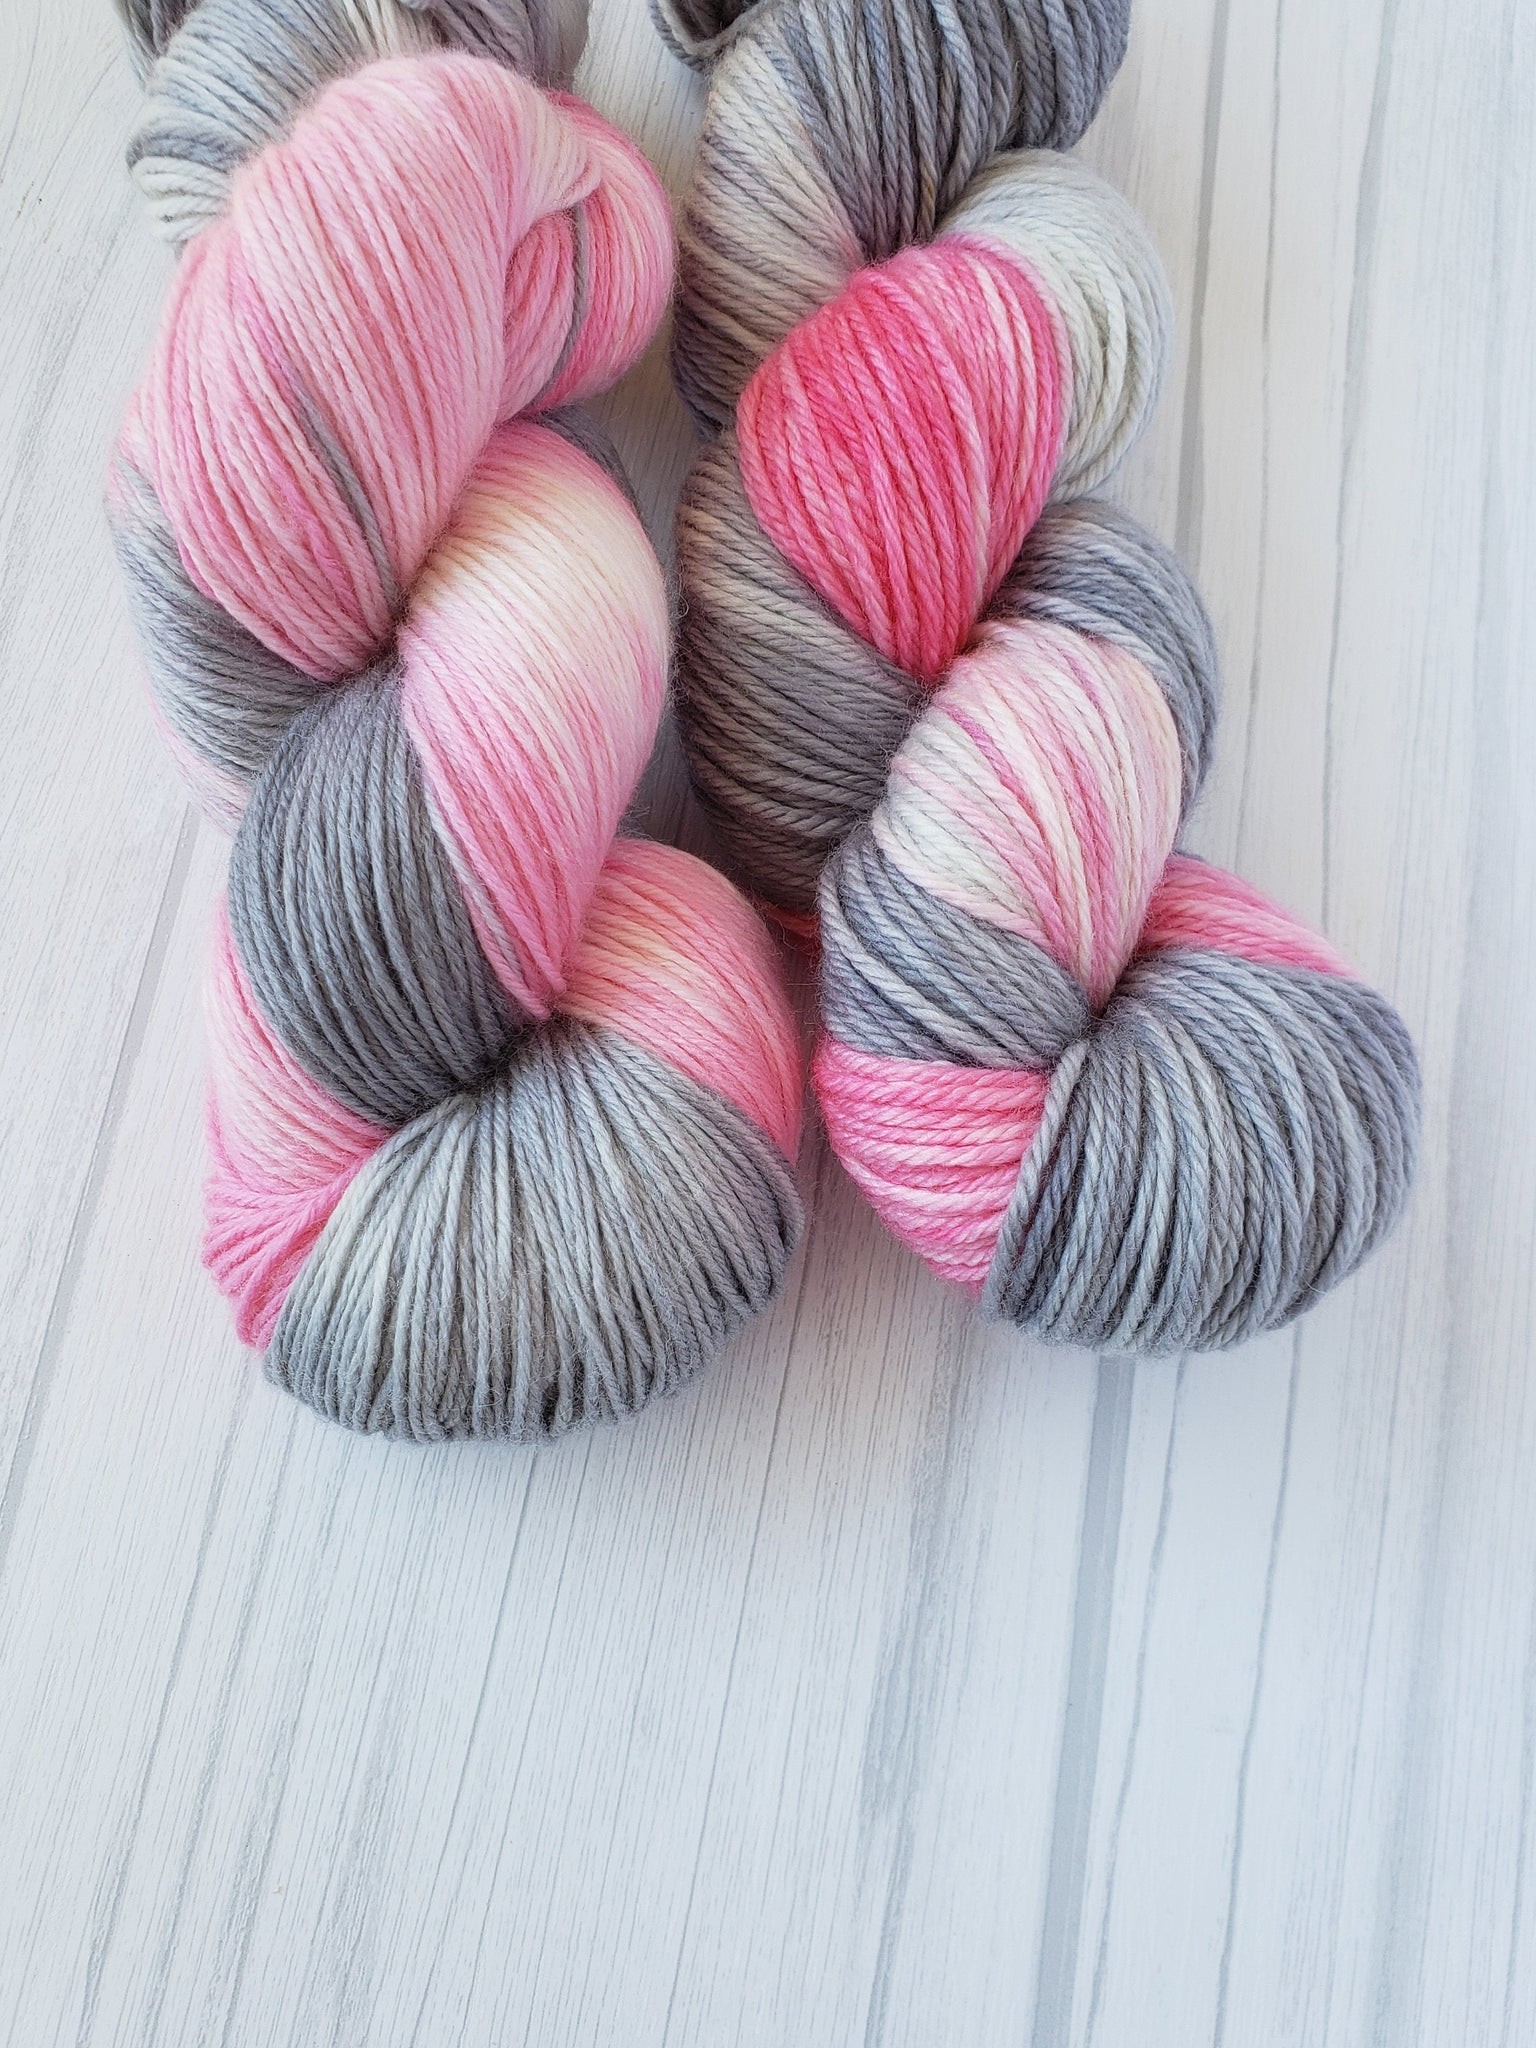 Ballerina Swan Lake, Hand Dyed Yarn in Sock Weight - Spindle warps yarns